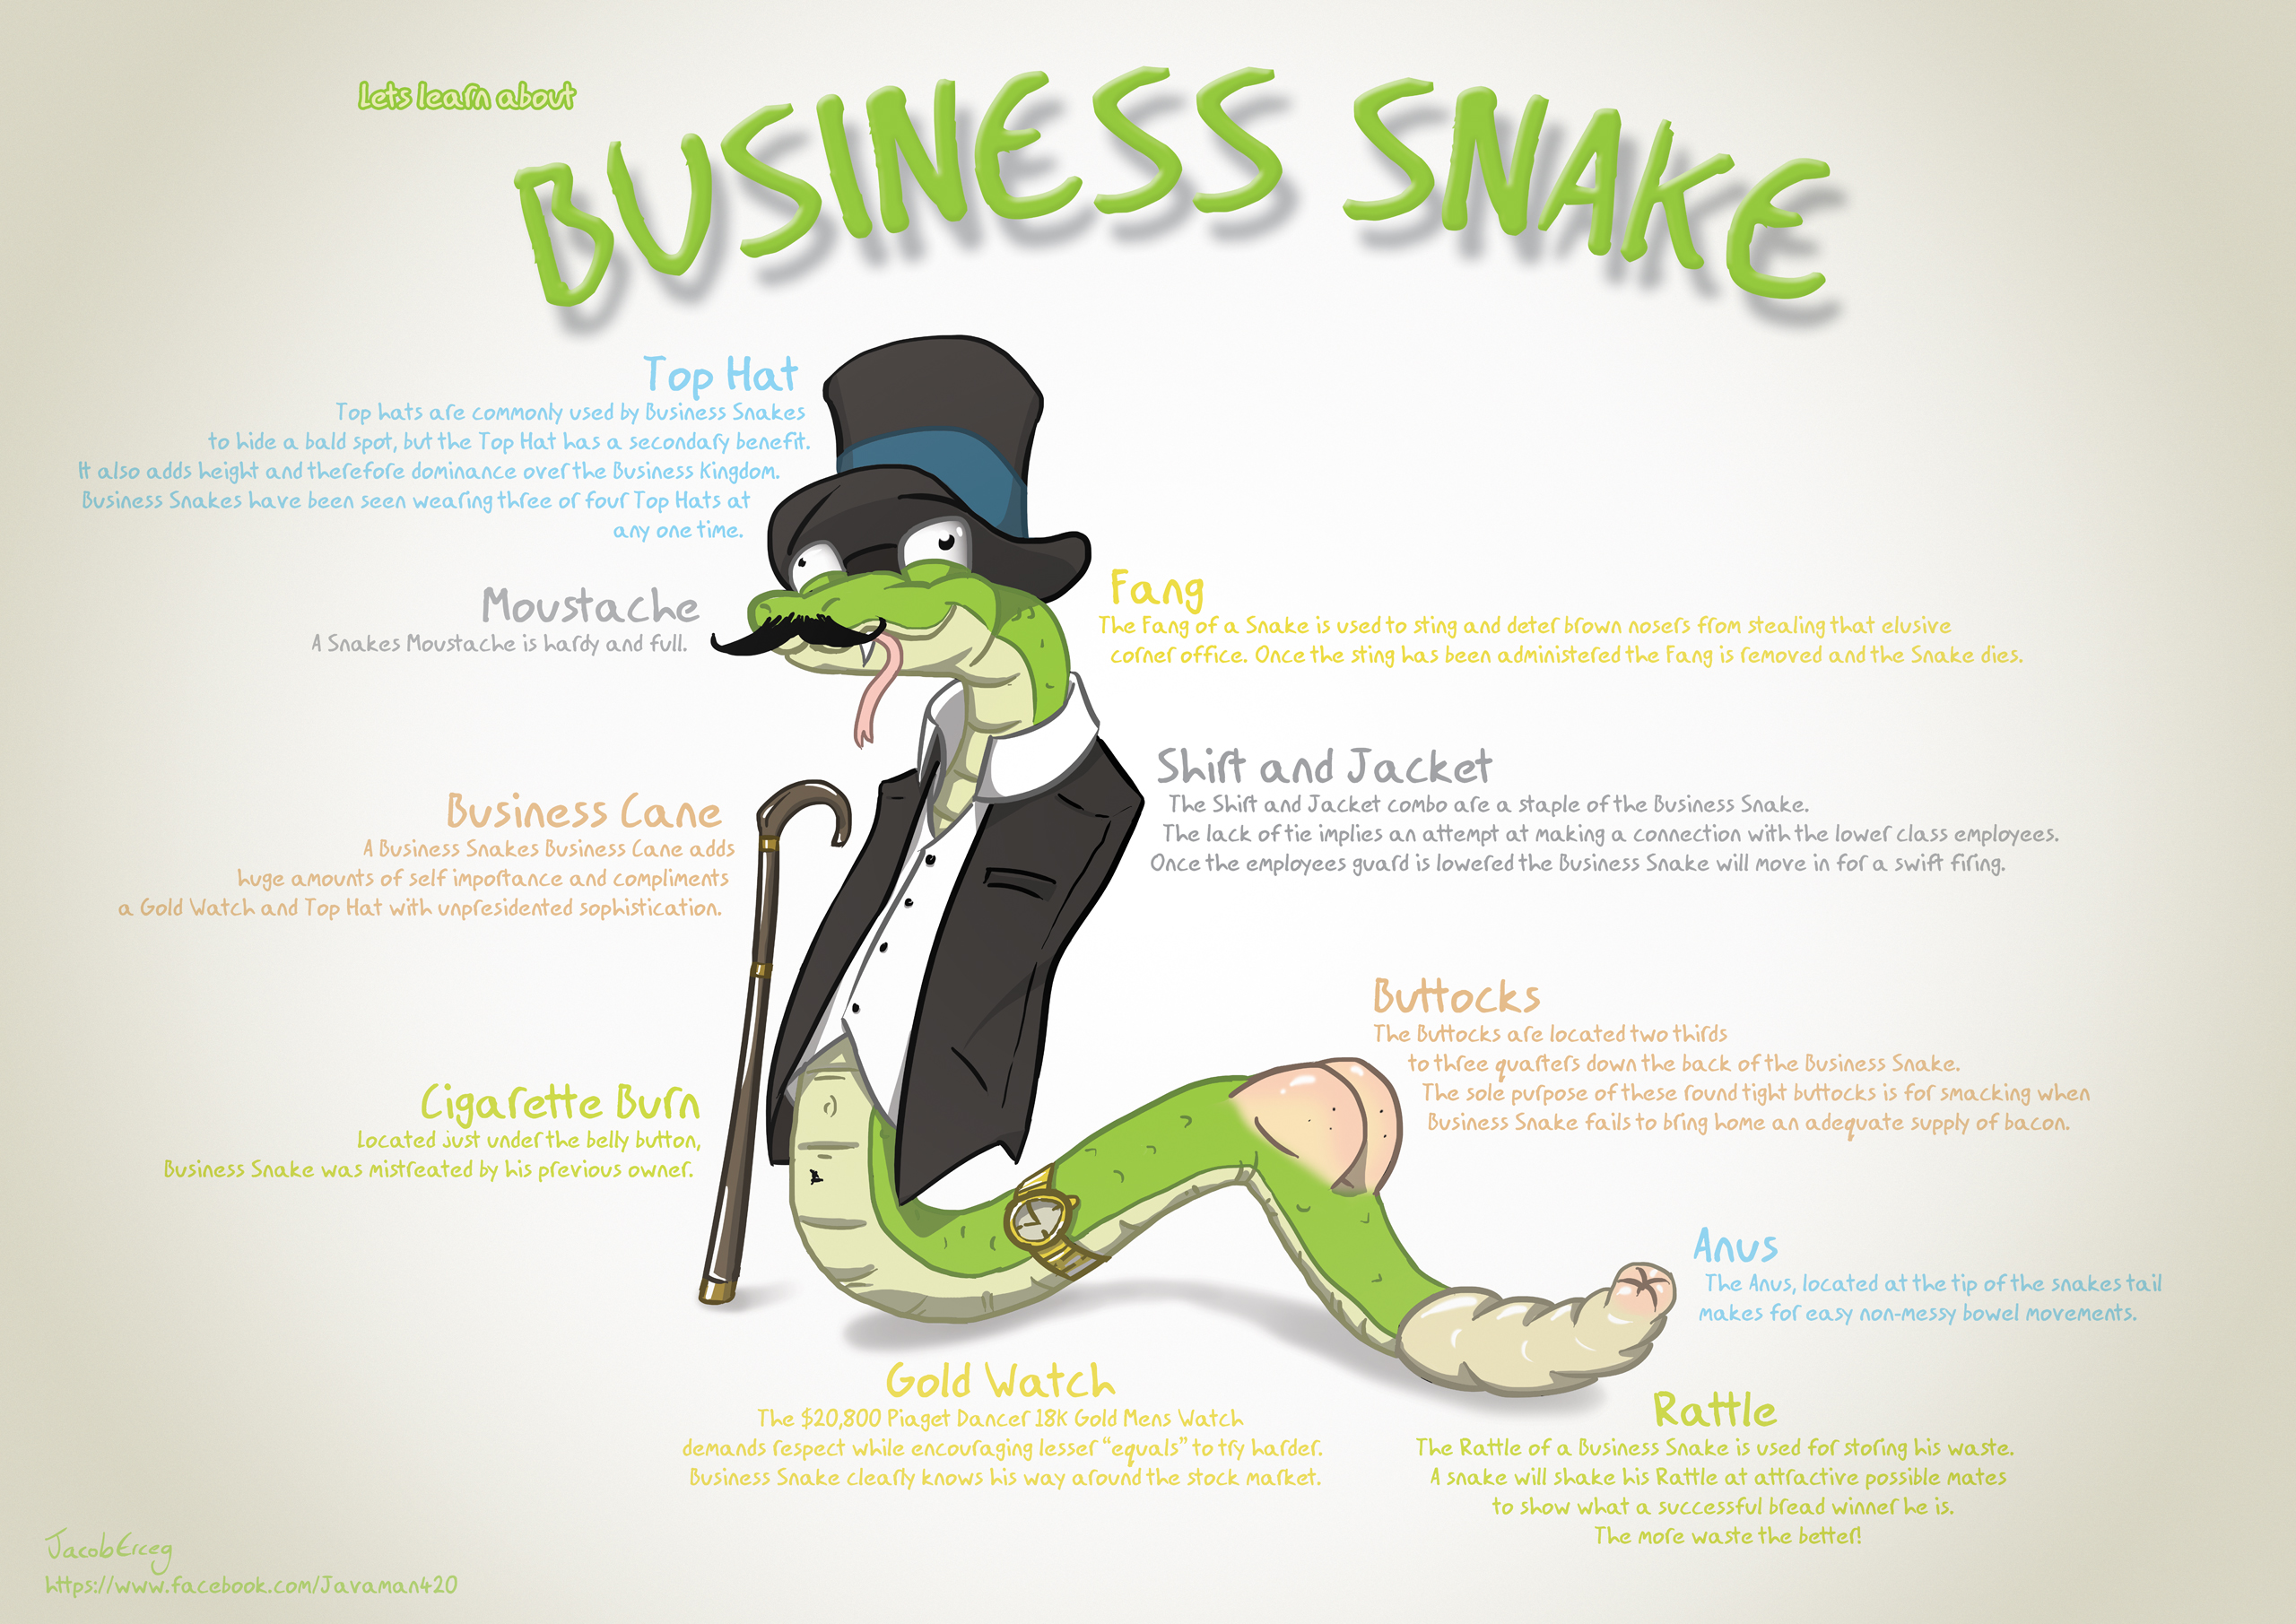 Lets learn bout BUSINESS SNAKE